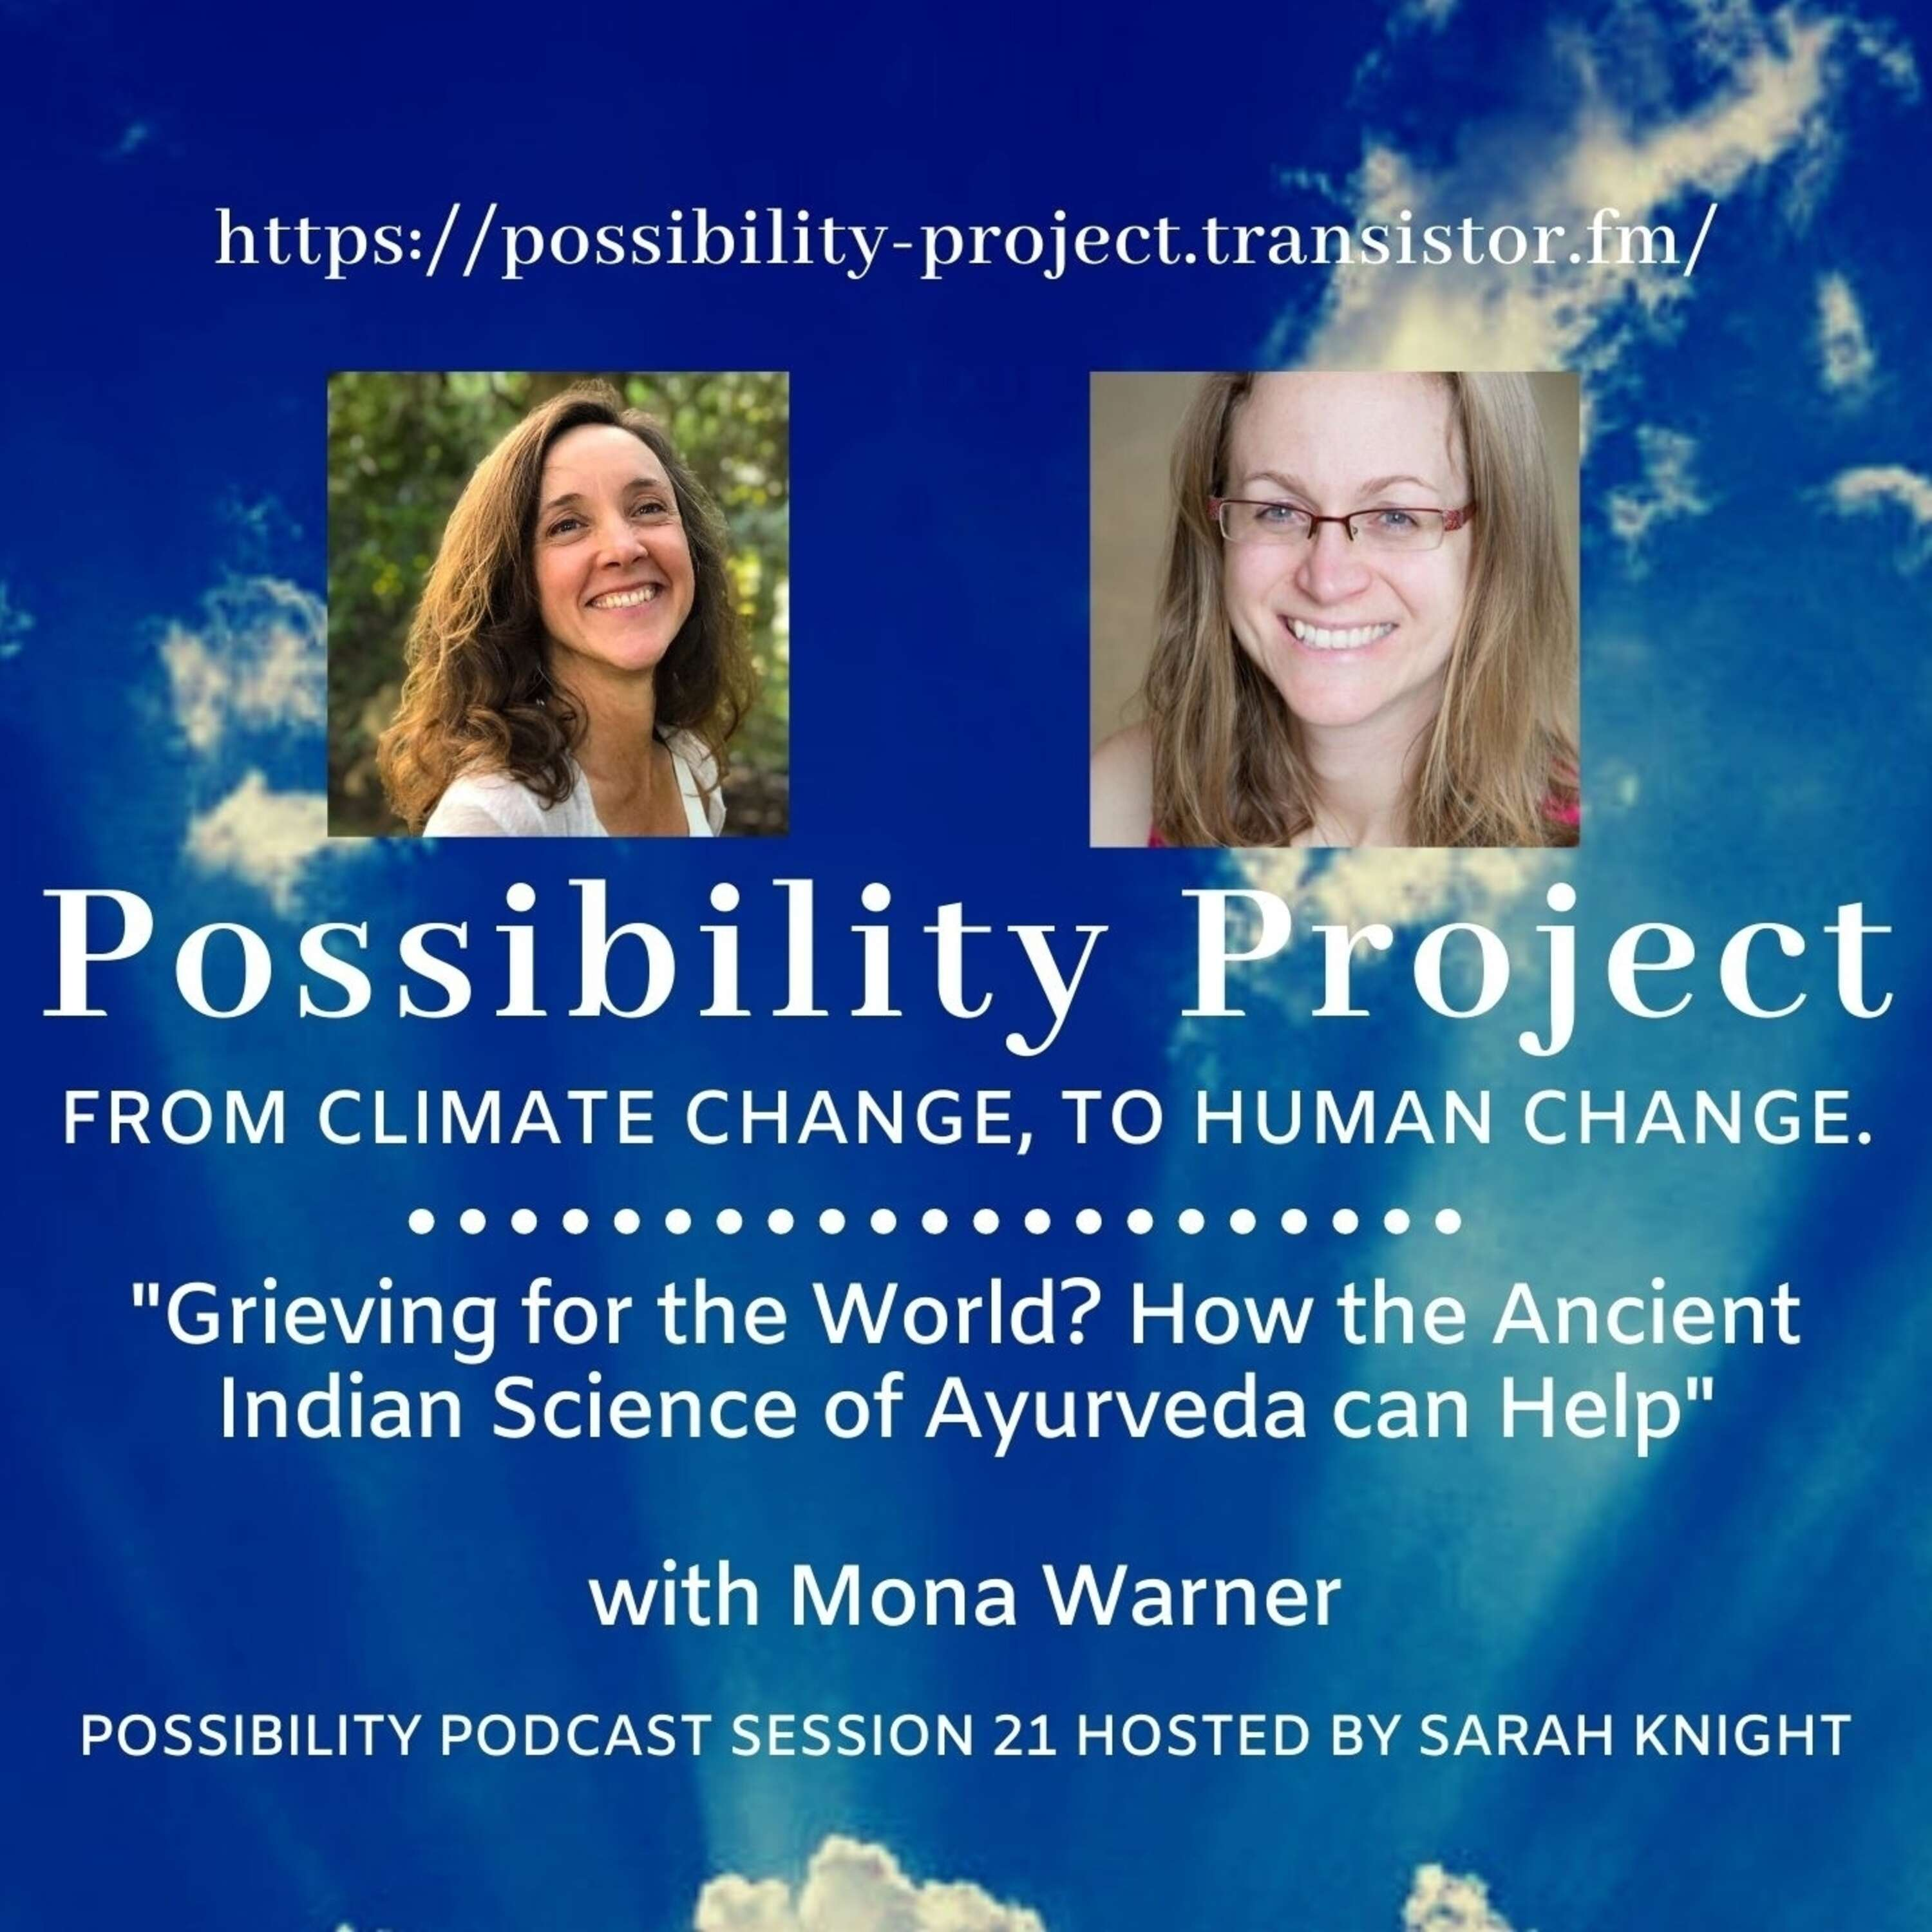 Grieving for the World? How the Ancient Indian Science of Ayurveda can Help. Possibility Podcast Session 21